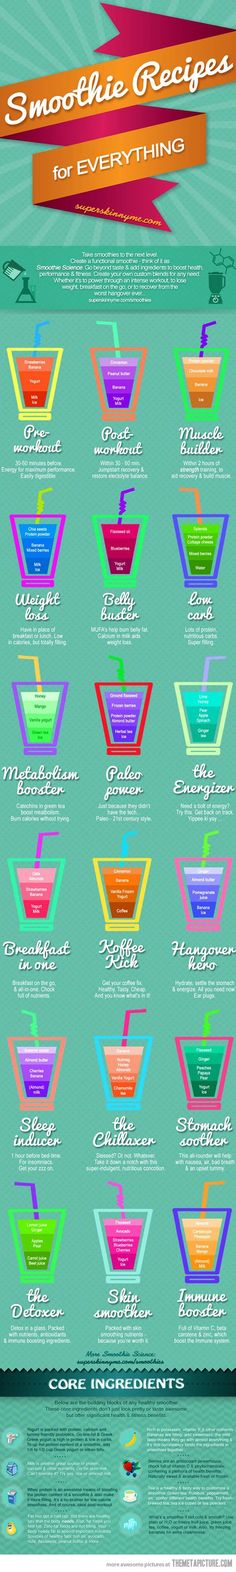 Smoothie blends for any reason: weight loss, detox, immunity boost, energizing, pre- and post-workout. Love the detox smoothies! Juice Smoothie, Smoothie Drinks, Healthy Smoothies, Healthy Drinks, Get Healthy, Healthy Snacks, Fitness Smoothies, Making Smoothies, Detox Smoothies